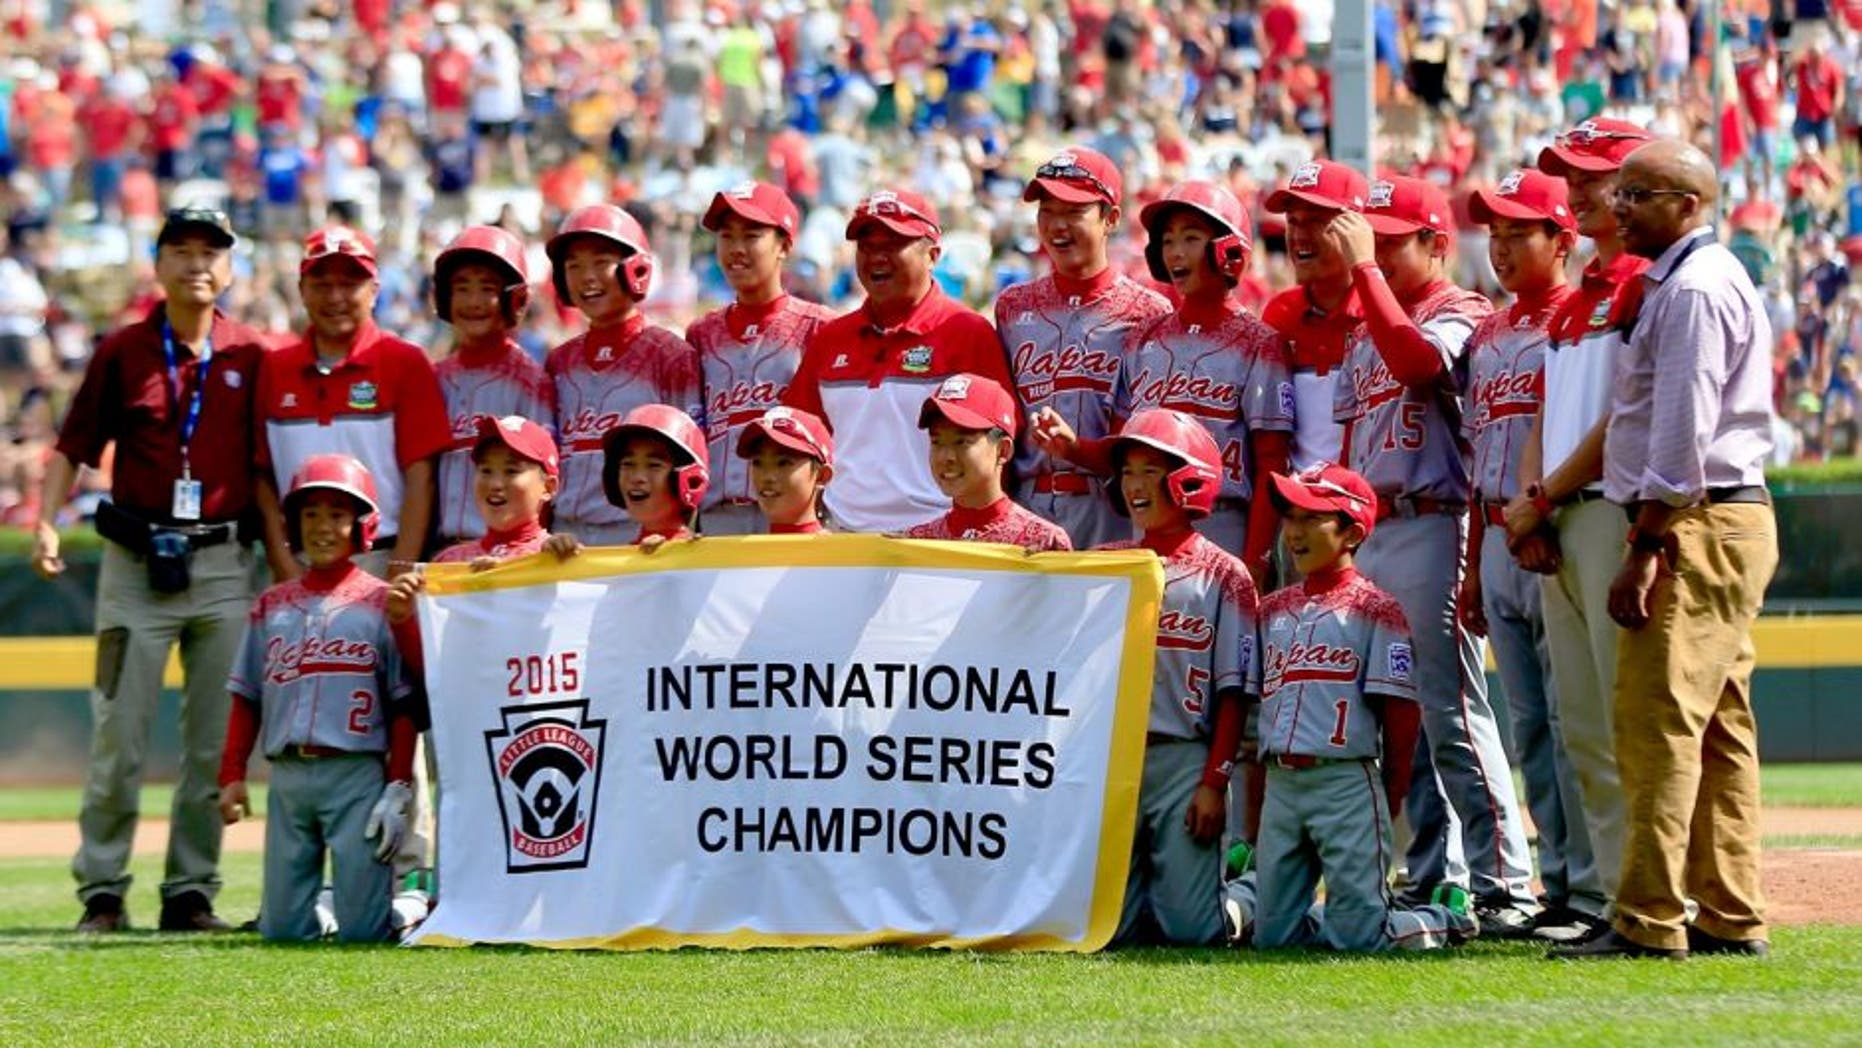 SOUTH WILLAMSPORT, PA - AUGUST 29: Members of team Japan pose with the banner after defeating team Mexico during the International Championship game of the Little League World Series at Lamade Stadium on August 29, 2015 in South Willamsport, Pennsylvania. (Photo by Rob Carr/Getty Images)